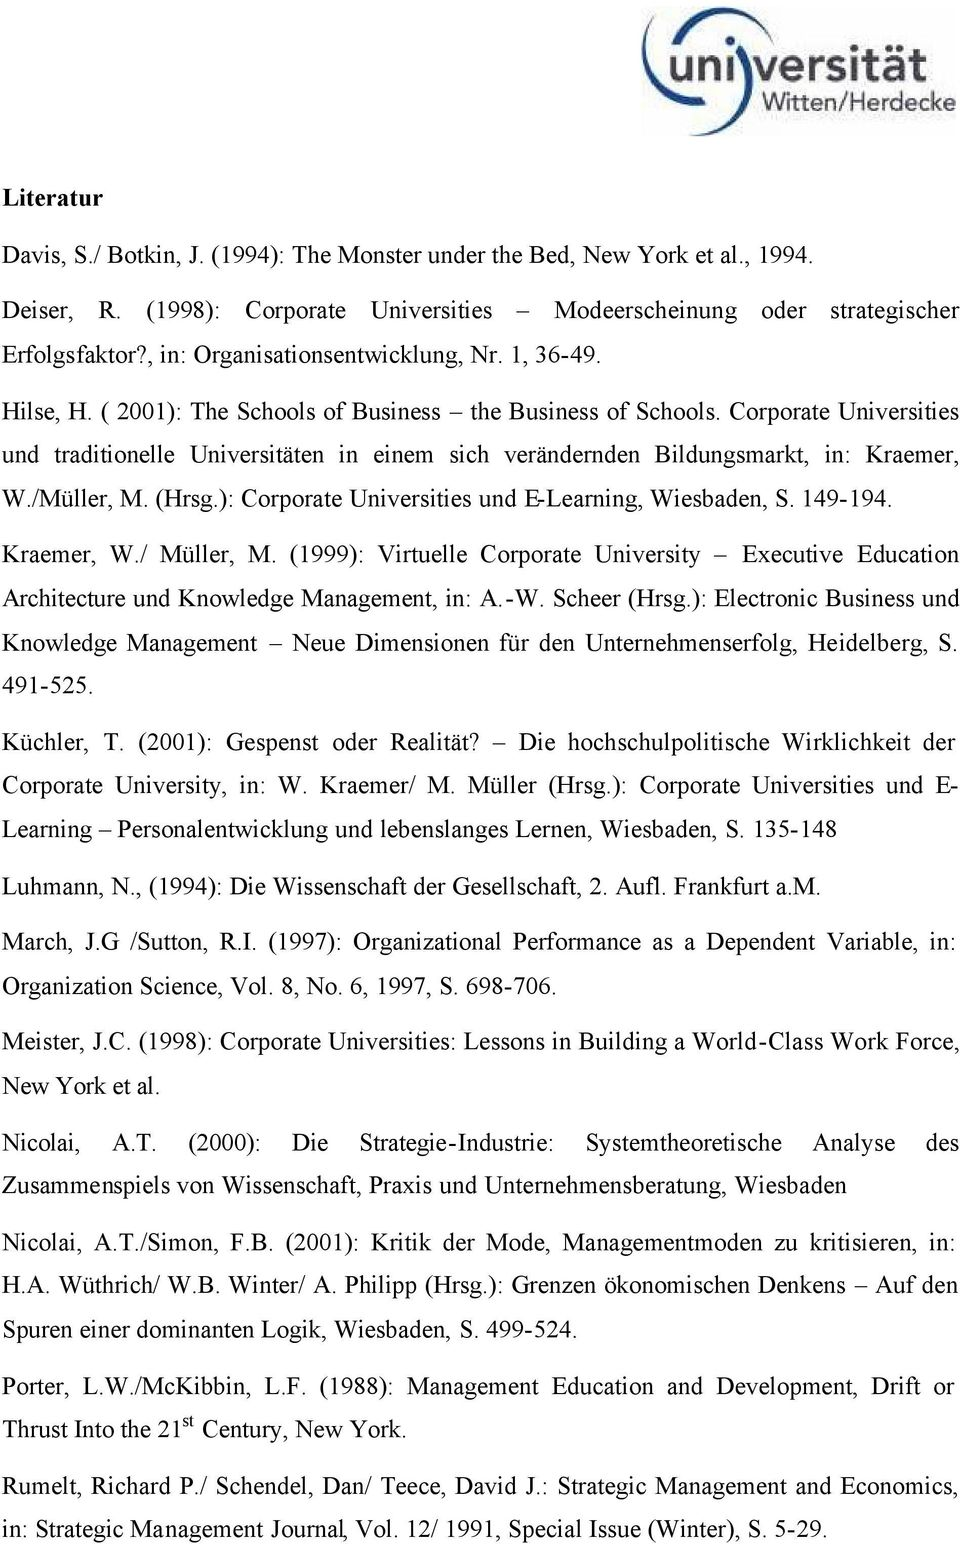 Corporate Universities und traditionelle Universitäten in einem sich verändernden Bildungsmarkt, in: Kraemer, W./Müller, M. (Hrsg.): Corporate Universities und E-Learning, Wiesbaden, S. 149-194.